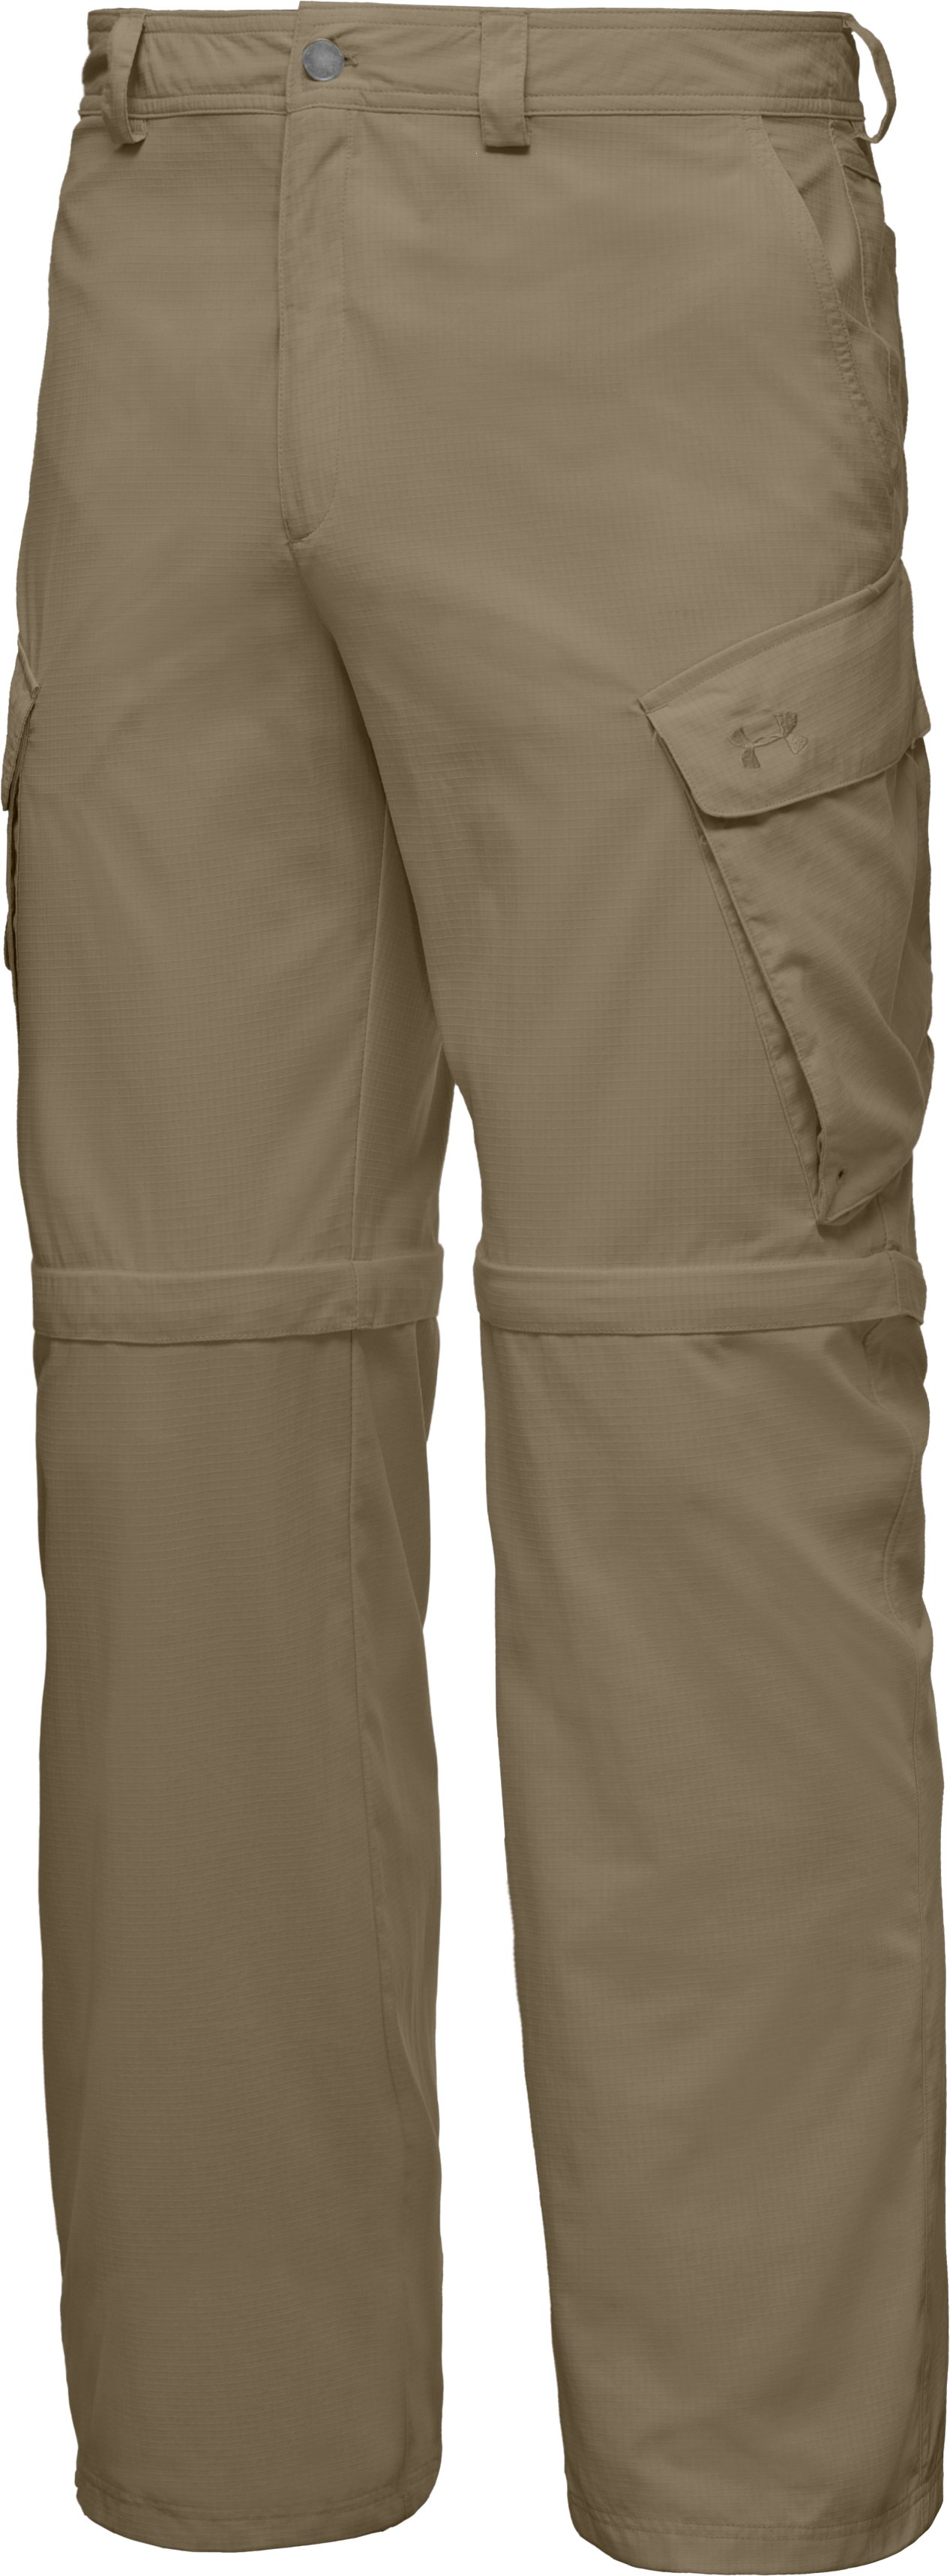 Men's UA Guide Zip-Off Trail Pants III, Bayou